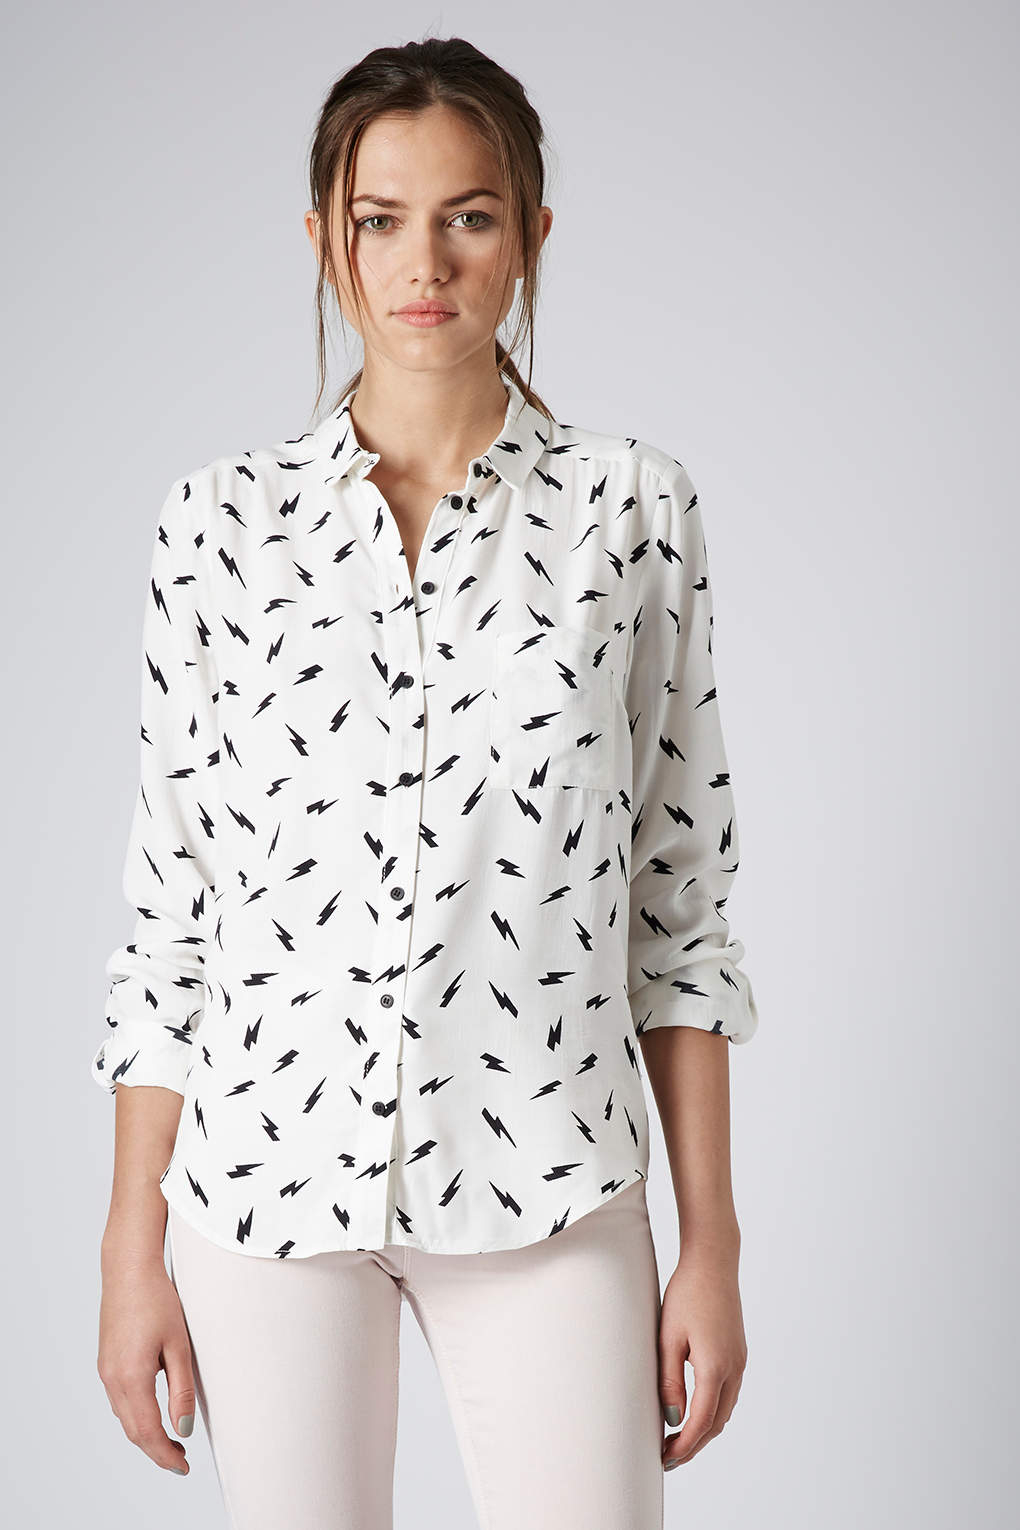 Topshop Womens 'Lightning in the City' T-Shirt - Outlet Cheapest Price Genuine Cheap Online EIMMoYWr